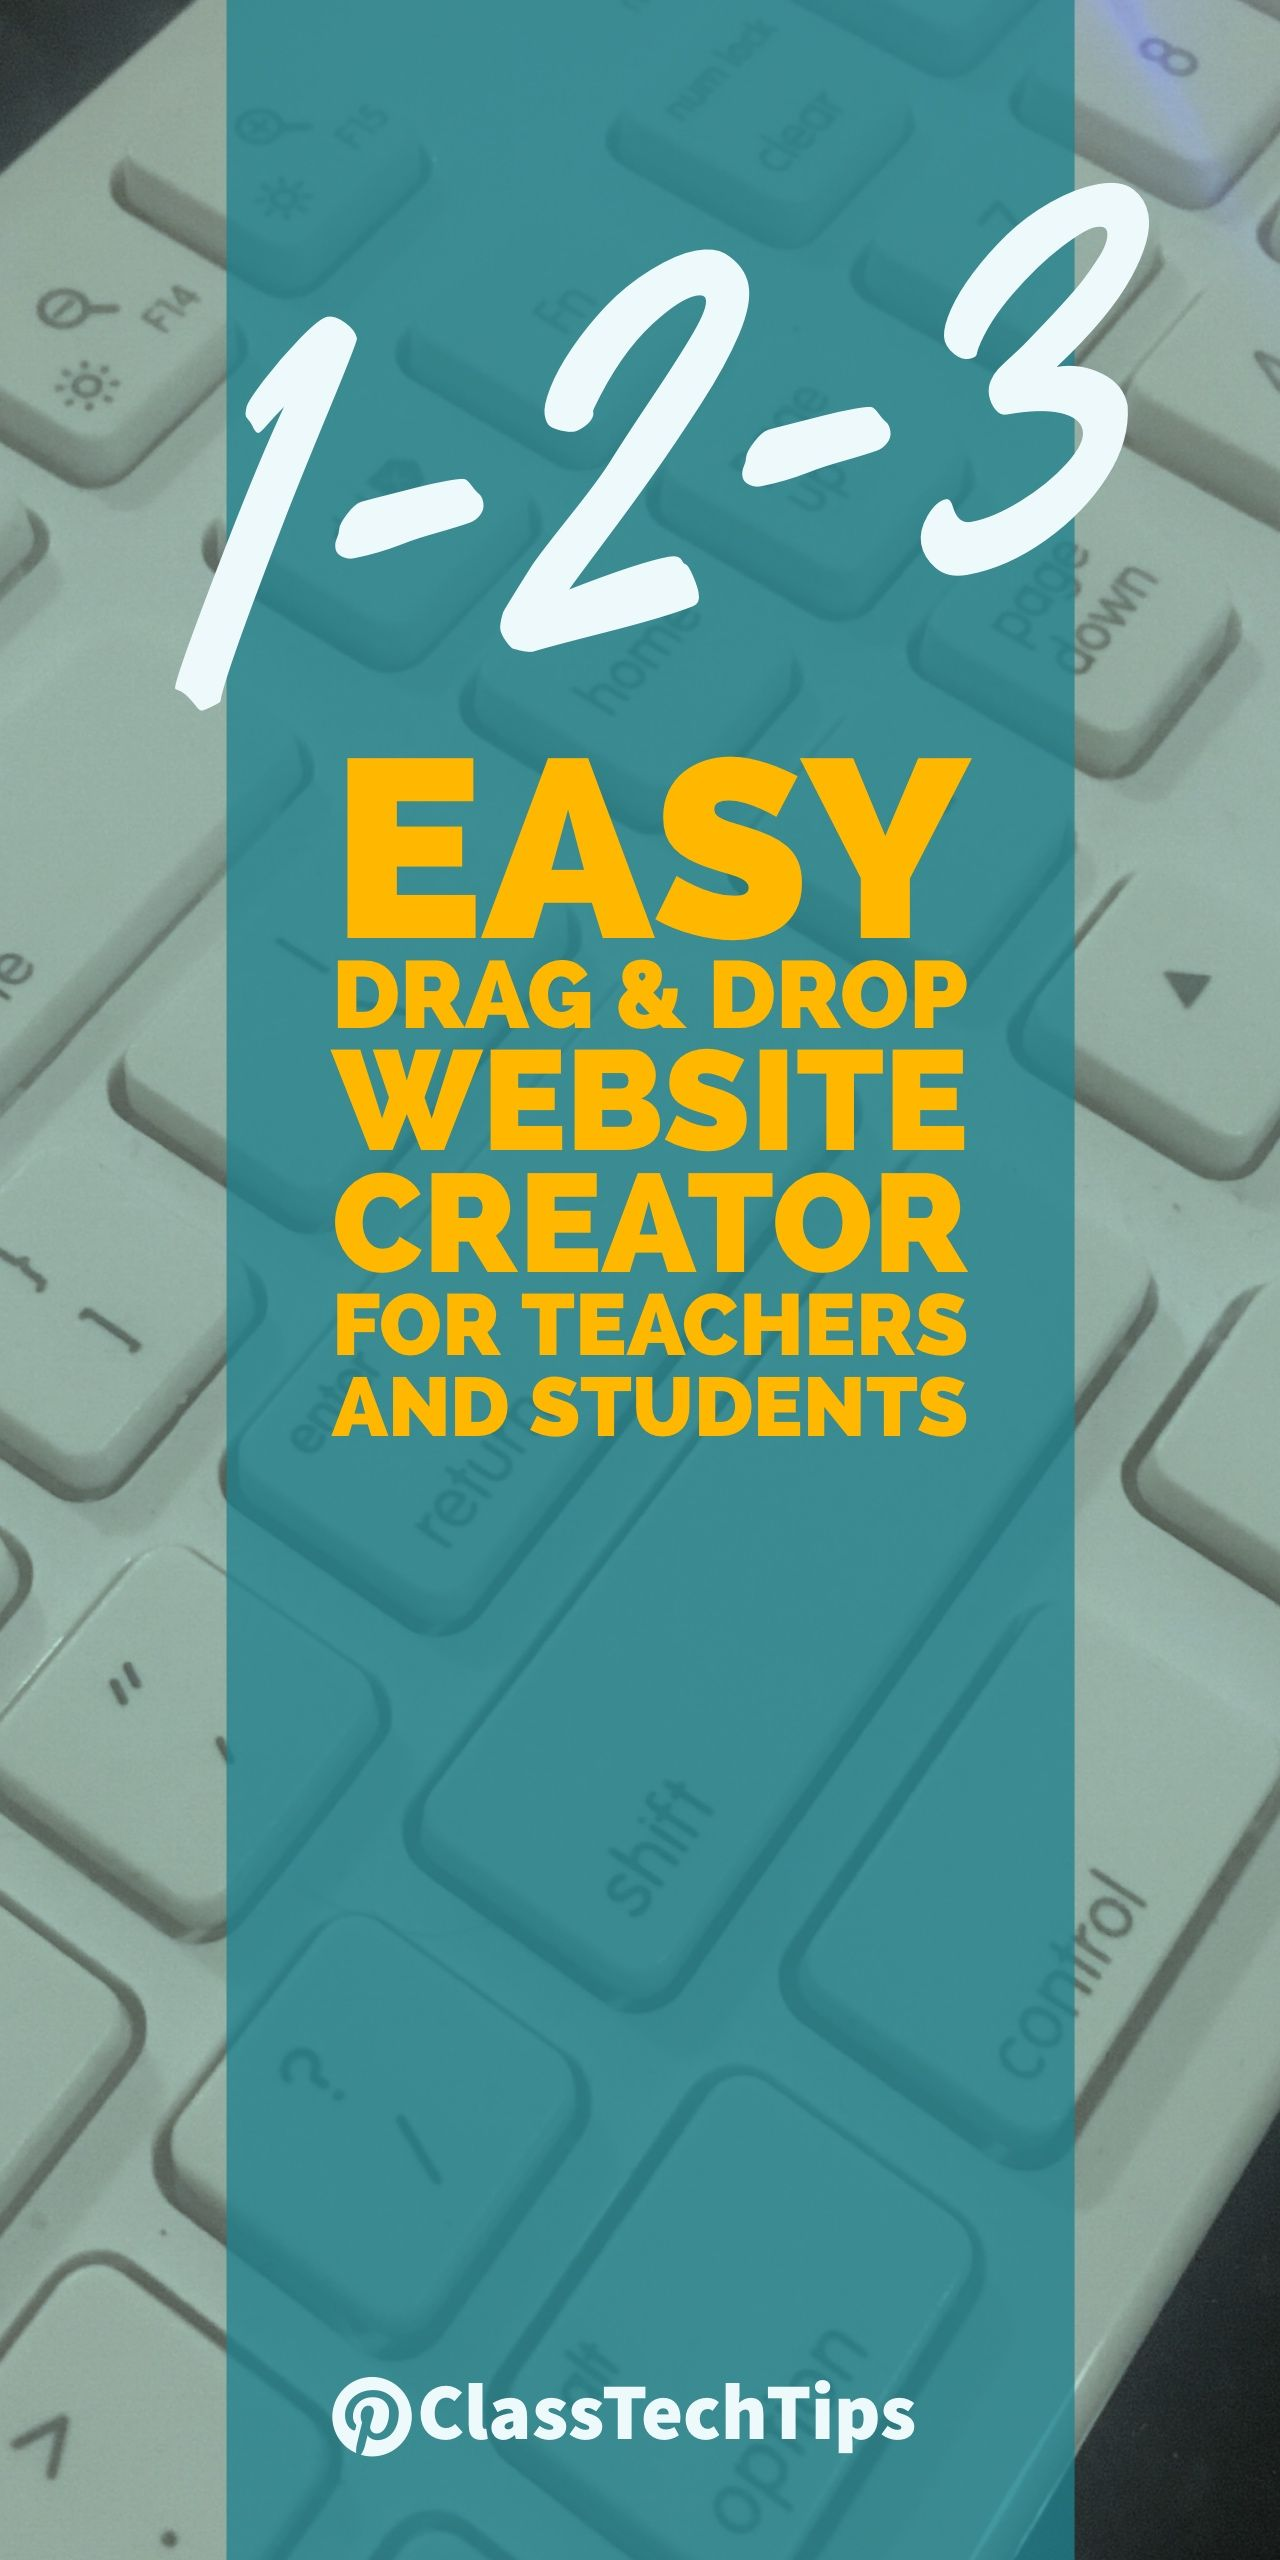 1 2 3 Easy Drag Drop Website Creator For Teachers And Students